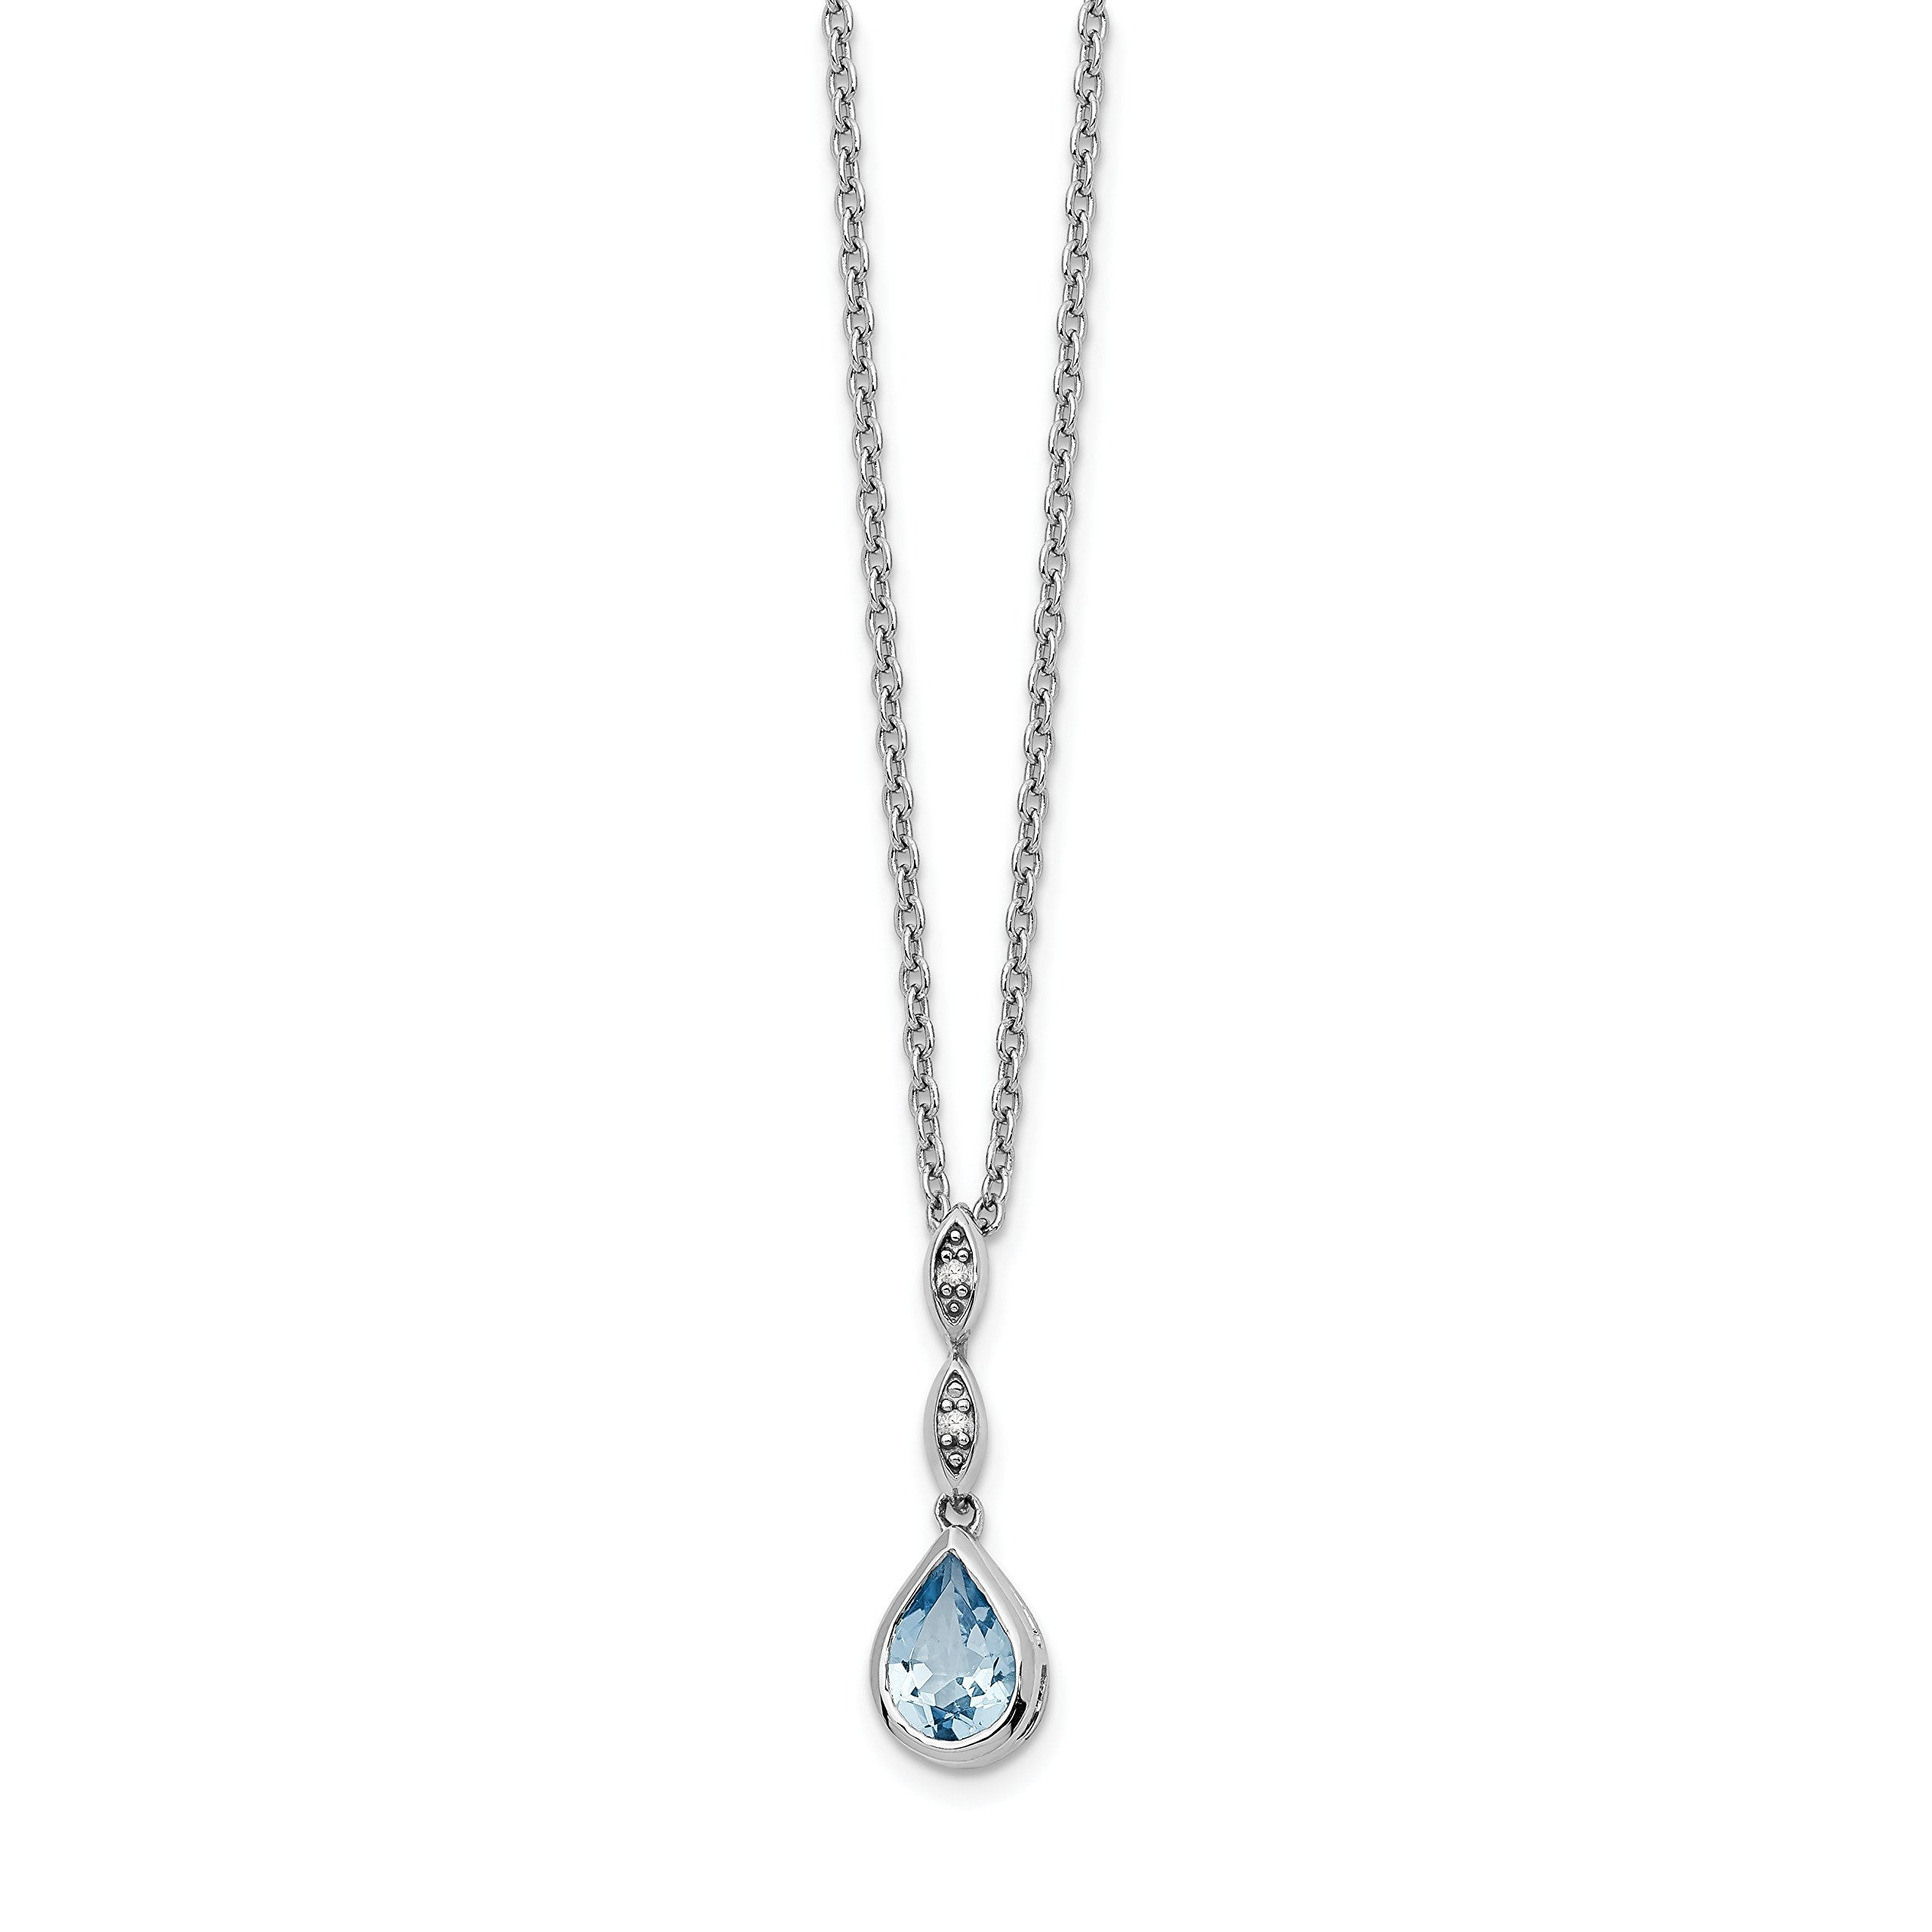 ICE CARATS 925 Sterling Silver Blue Topaz .01 Ct Diamond Chain Necklace Gemstone Fine Jewelry Gift Set For Women Heart